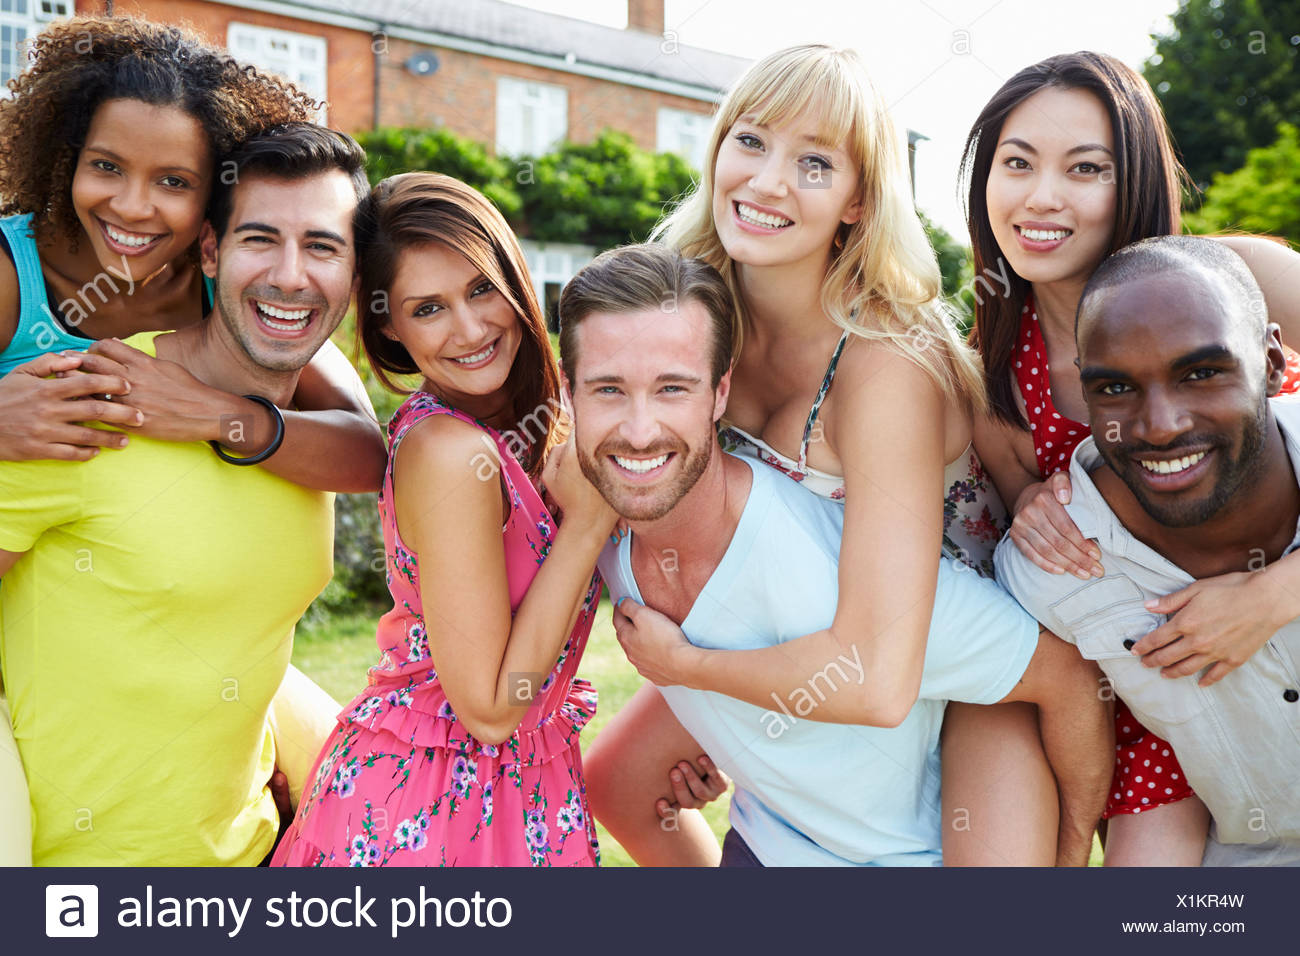 Portrait Of Friends Relaxing In Summer Garden Together Stock Photo